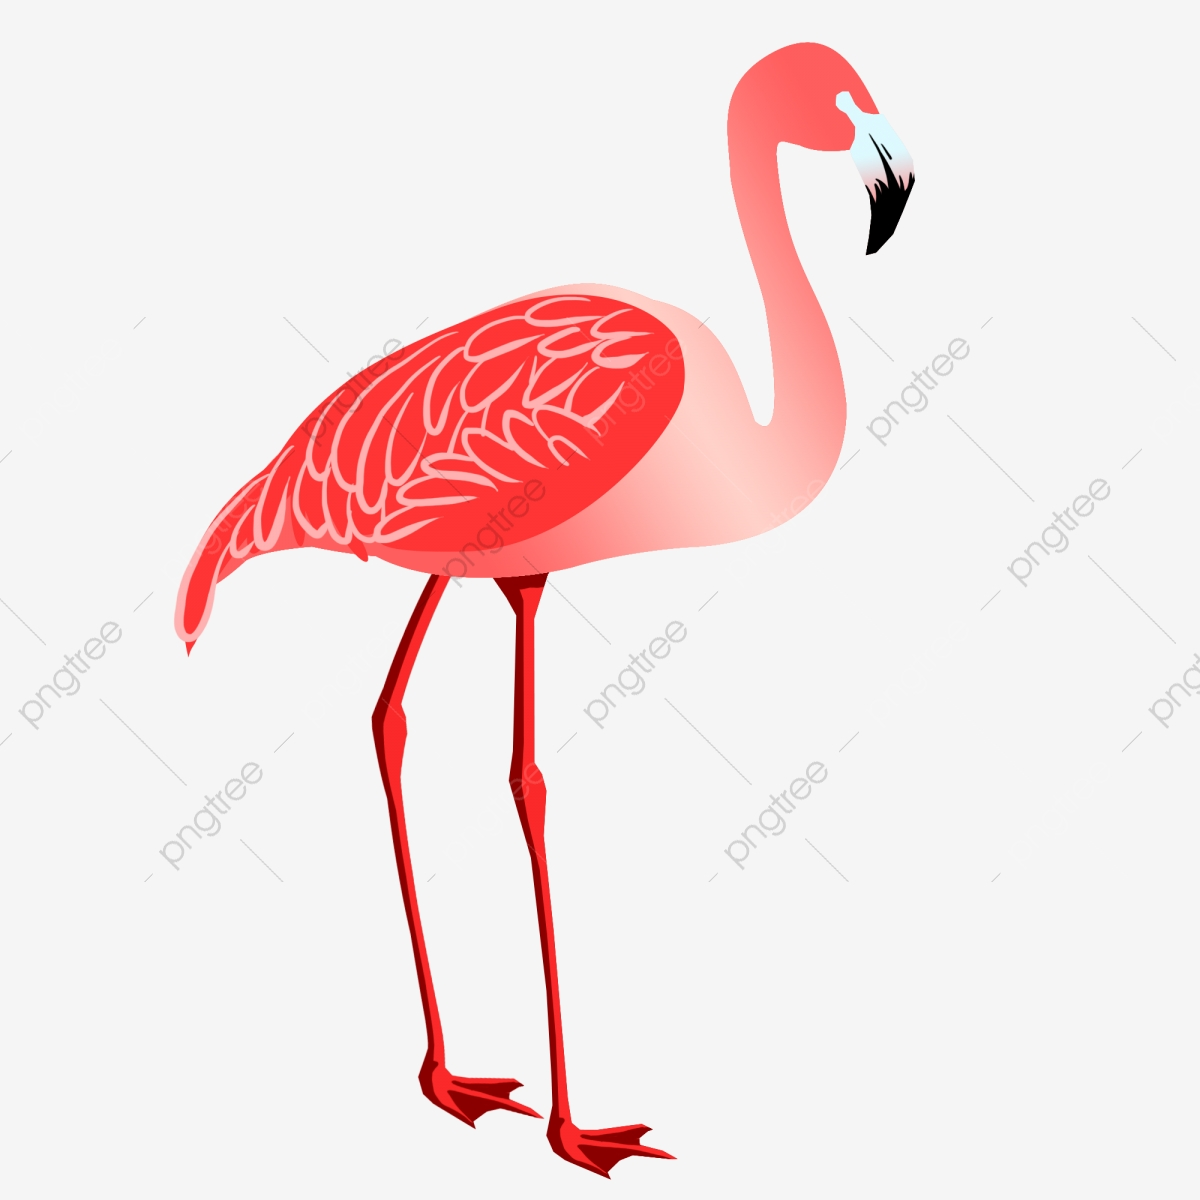 Flamingo clipart group. Red dragonfly avian neck